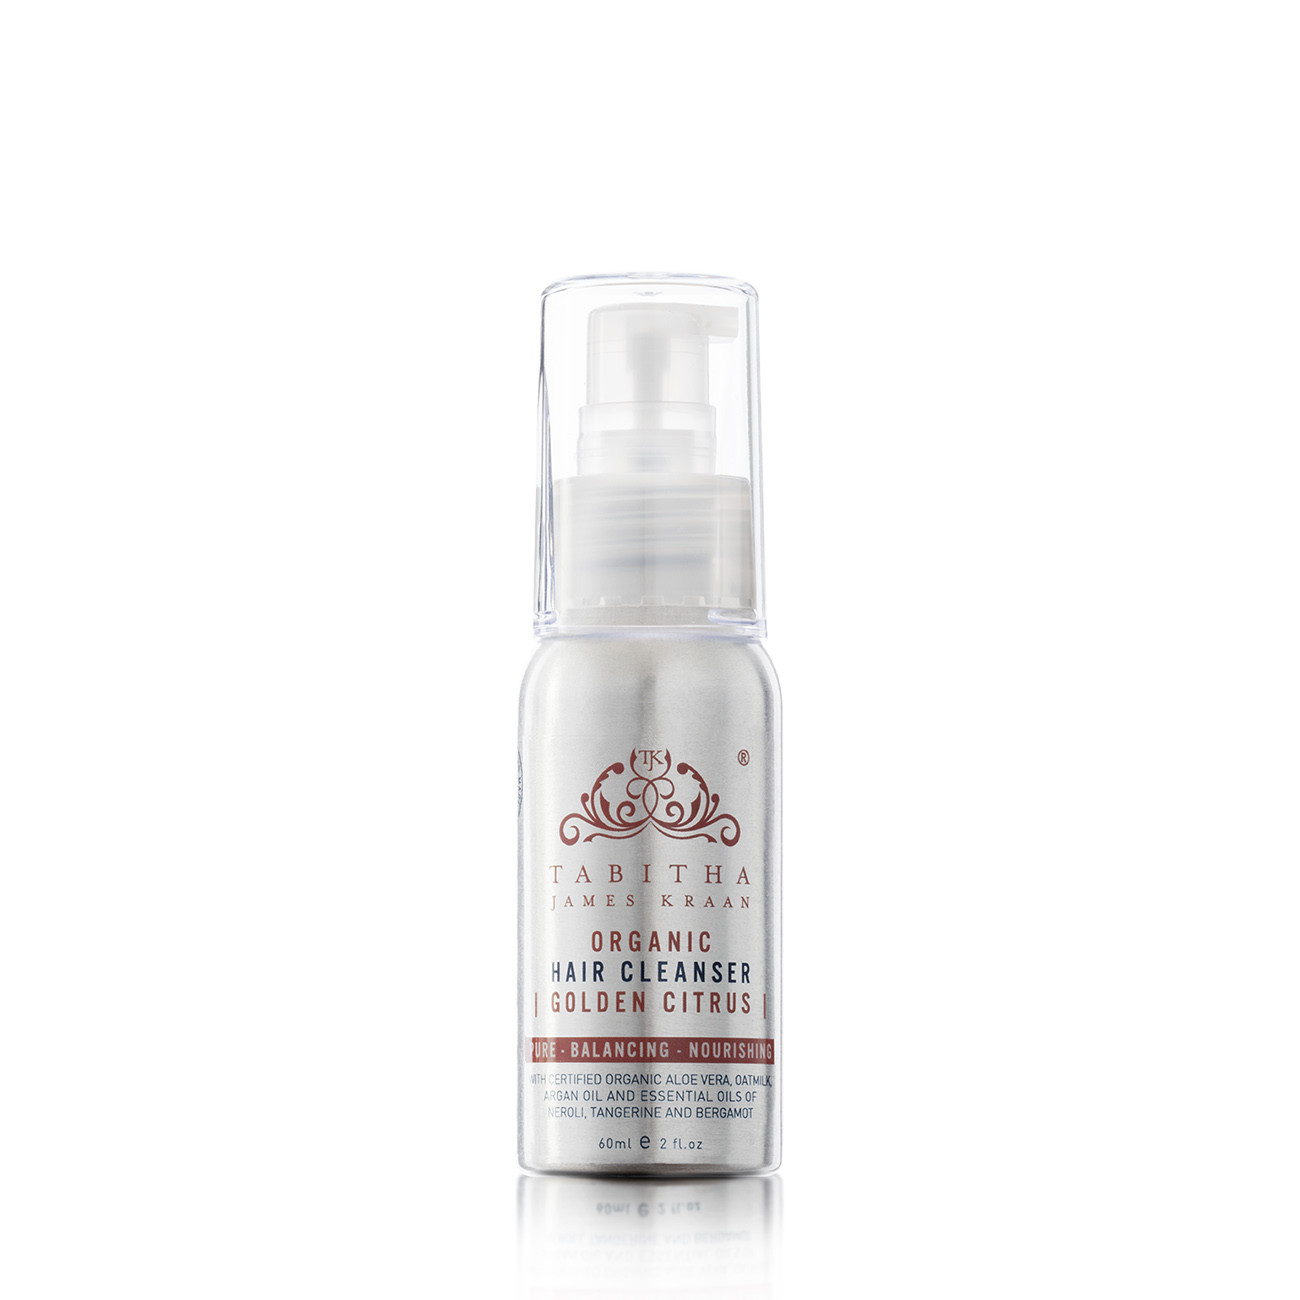 tabithajameskraan-organic-hair-cleanser-golden-citrus-60ml